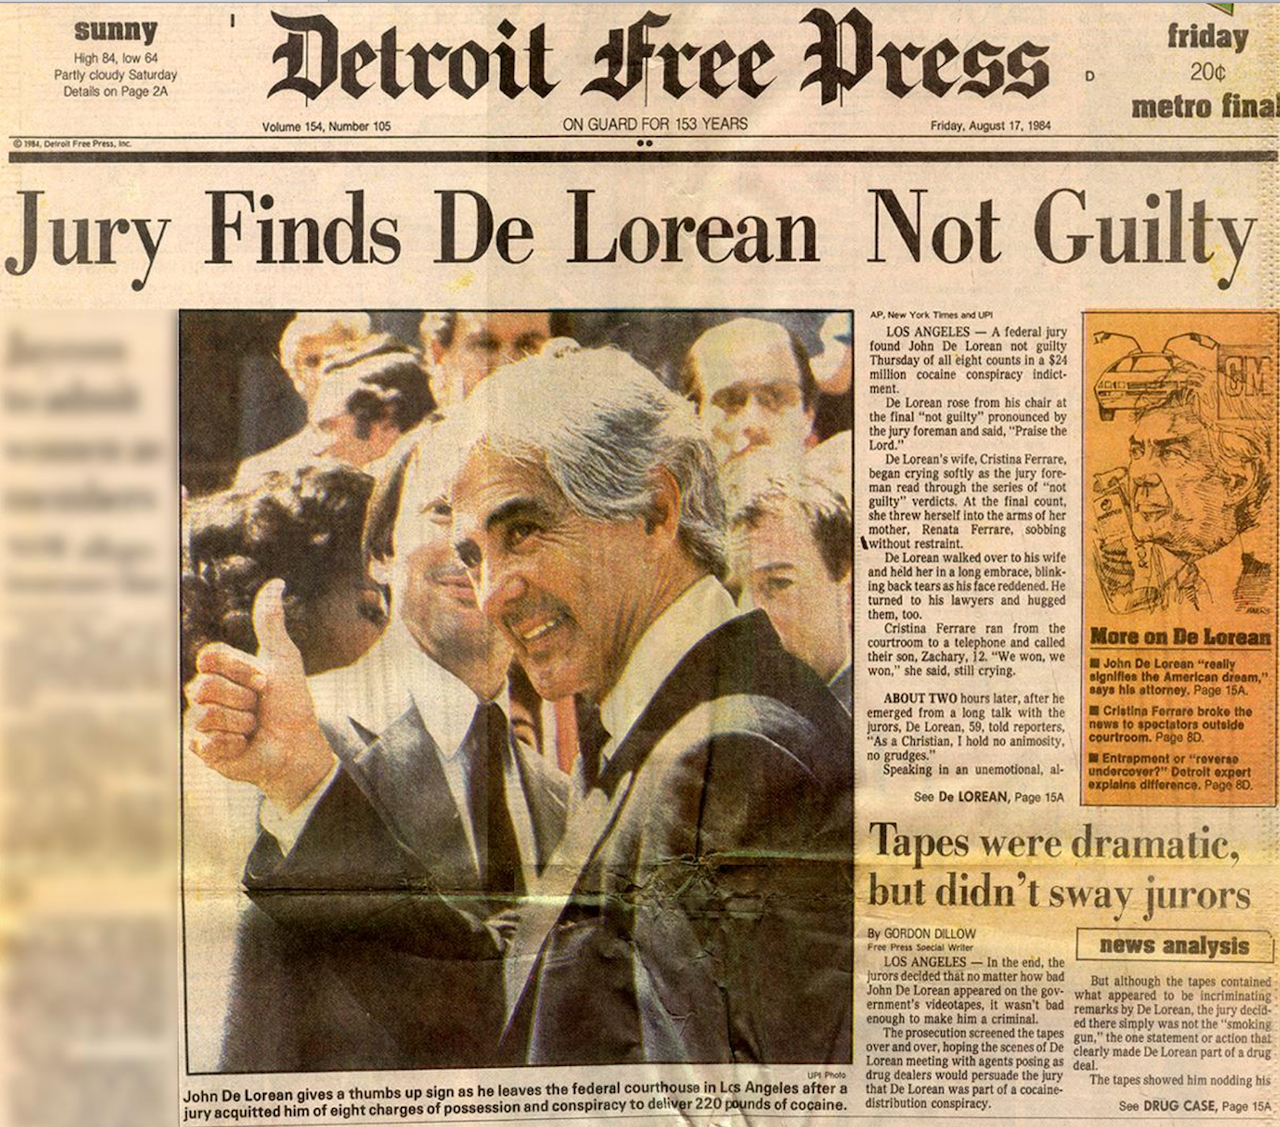 The cover of the Detroit Free Press, August 17th, 1984.